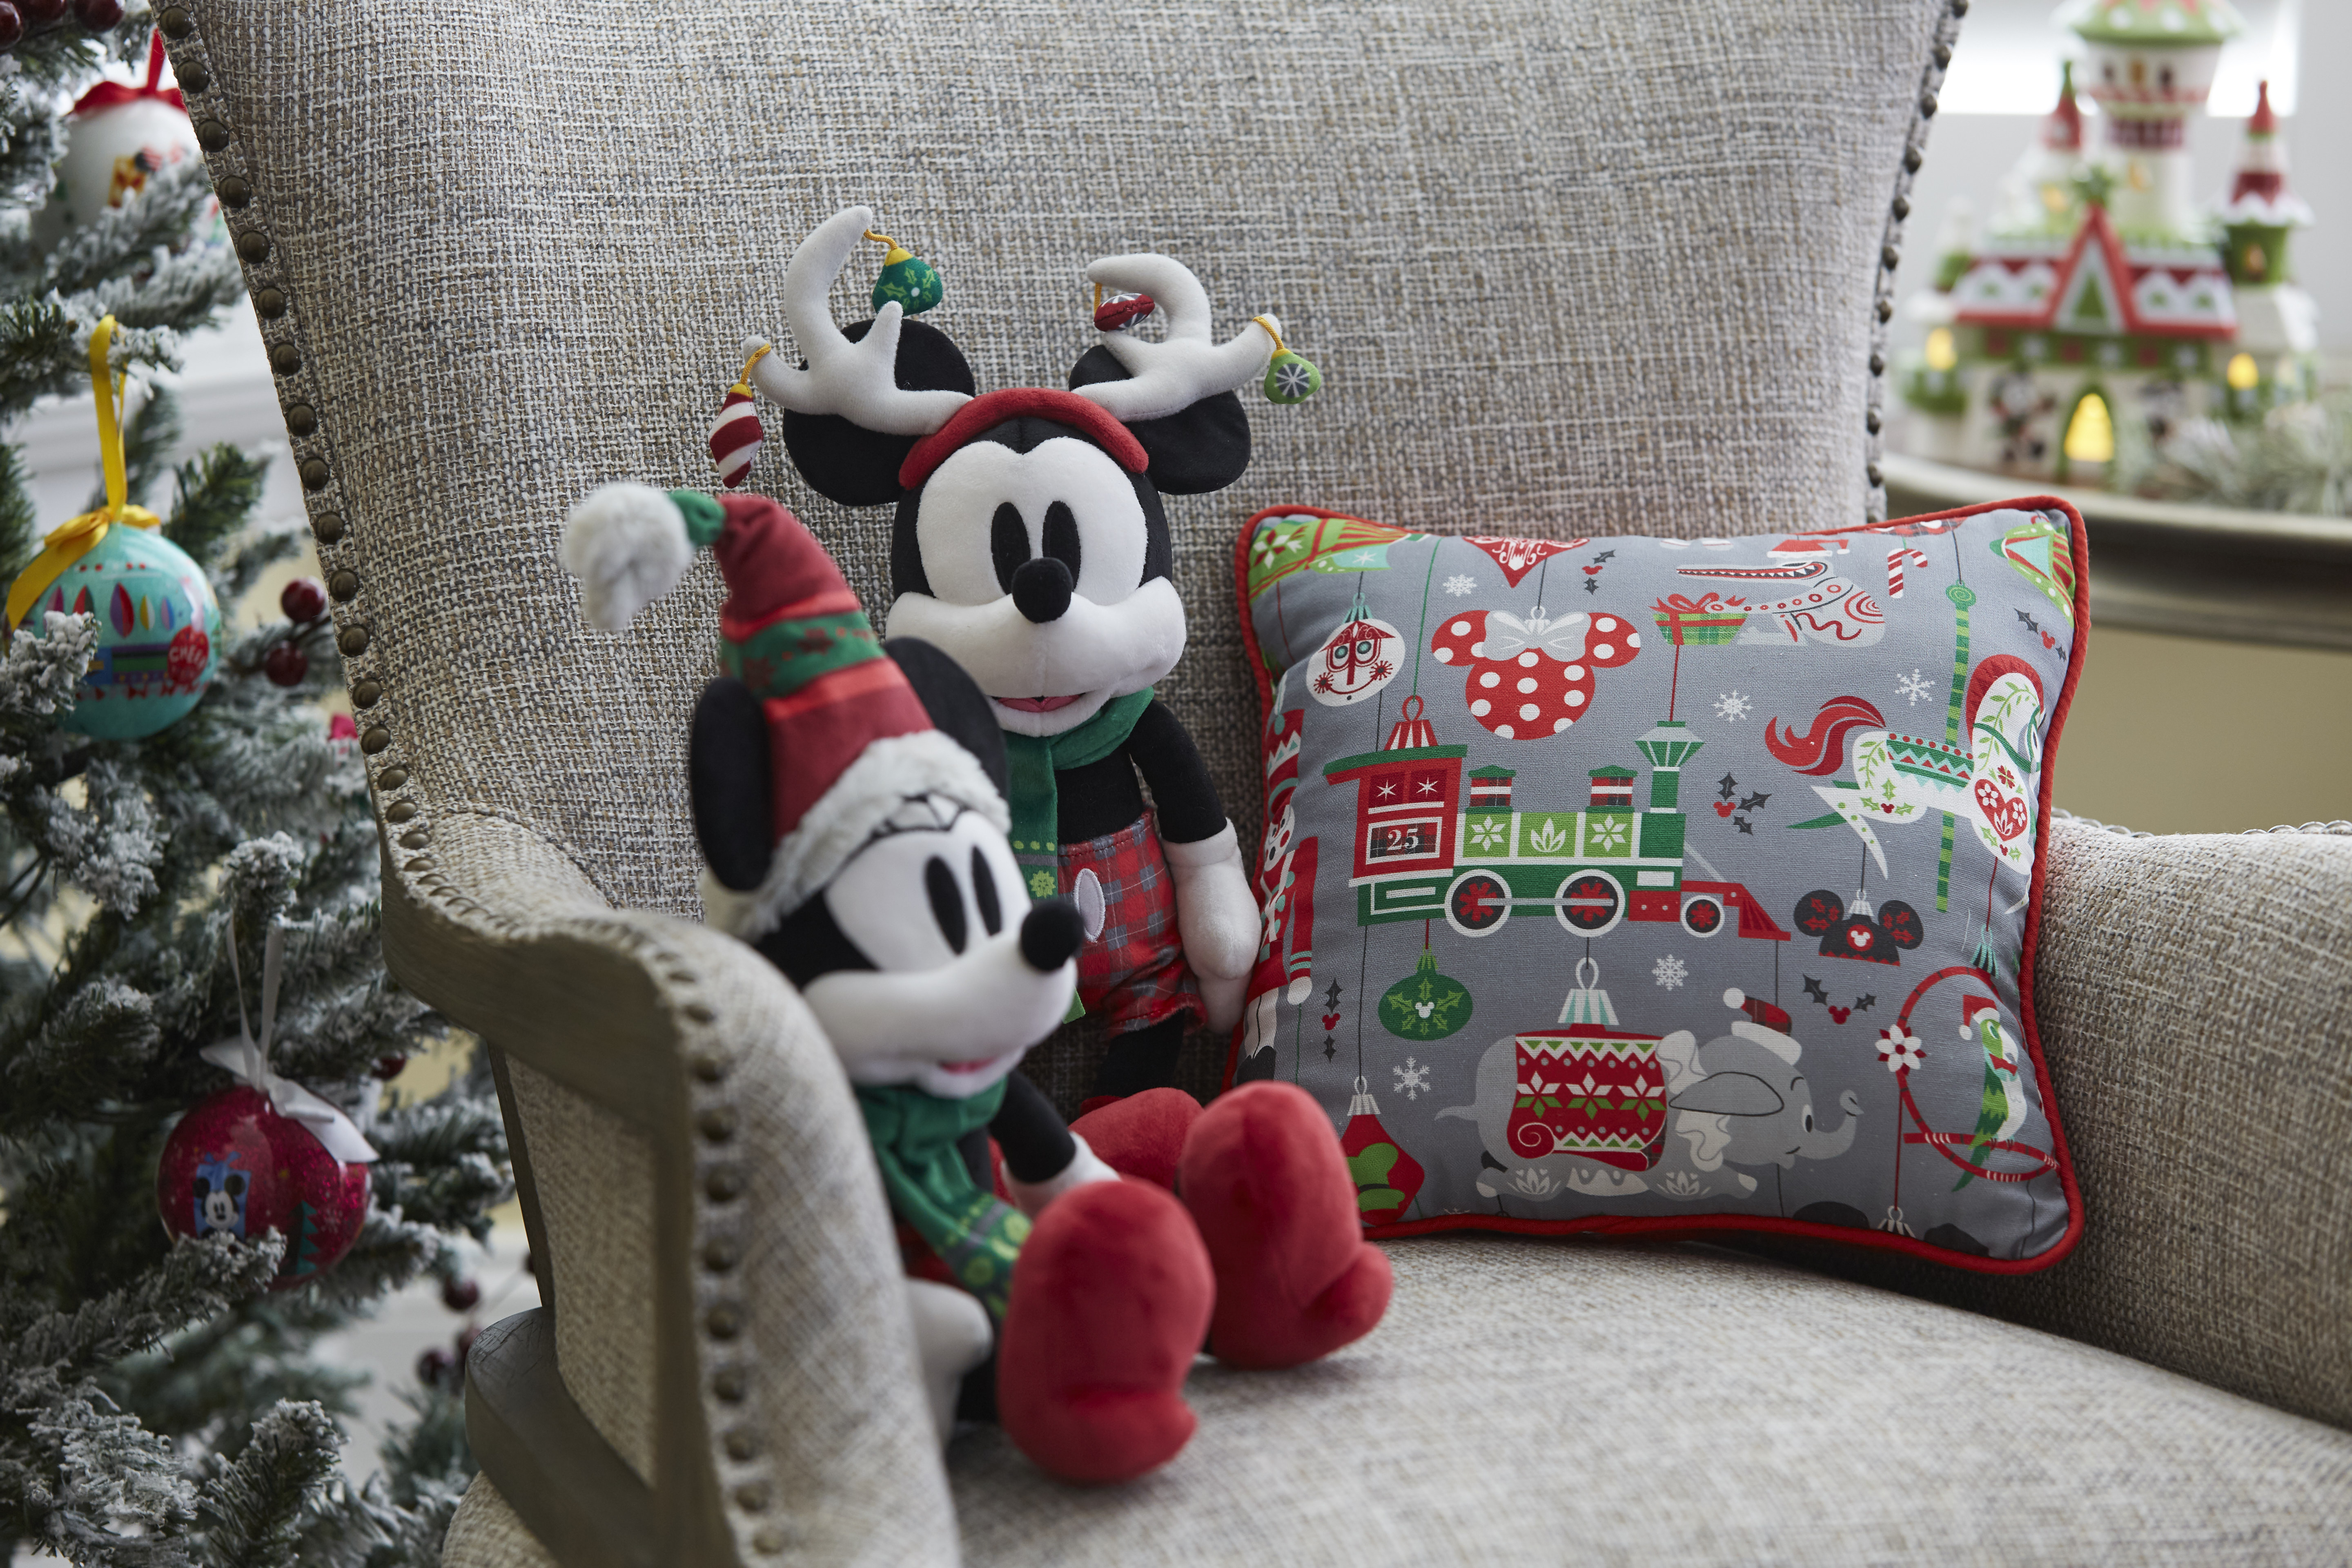 Just in time for the holiday shopping season, Disney Parks present very merry selection of gifts throughout Disneyland Resort in California and Walt Disney World Resort in Florida, including home dŽcor items like festive stockings and pillows. (Disney)